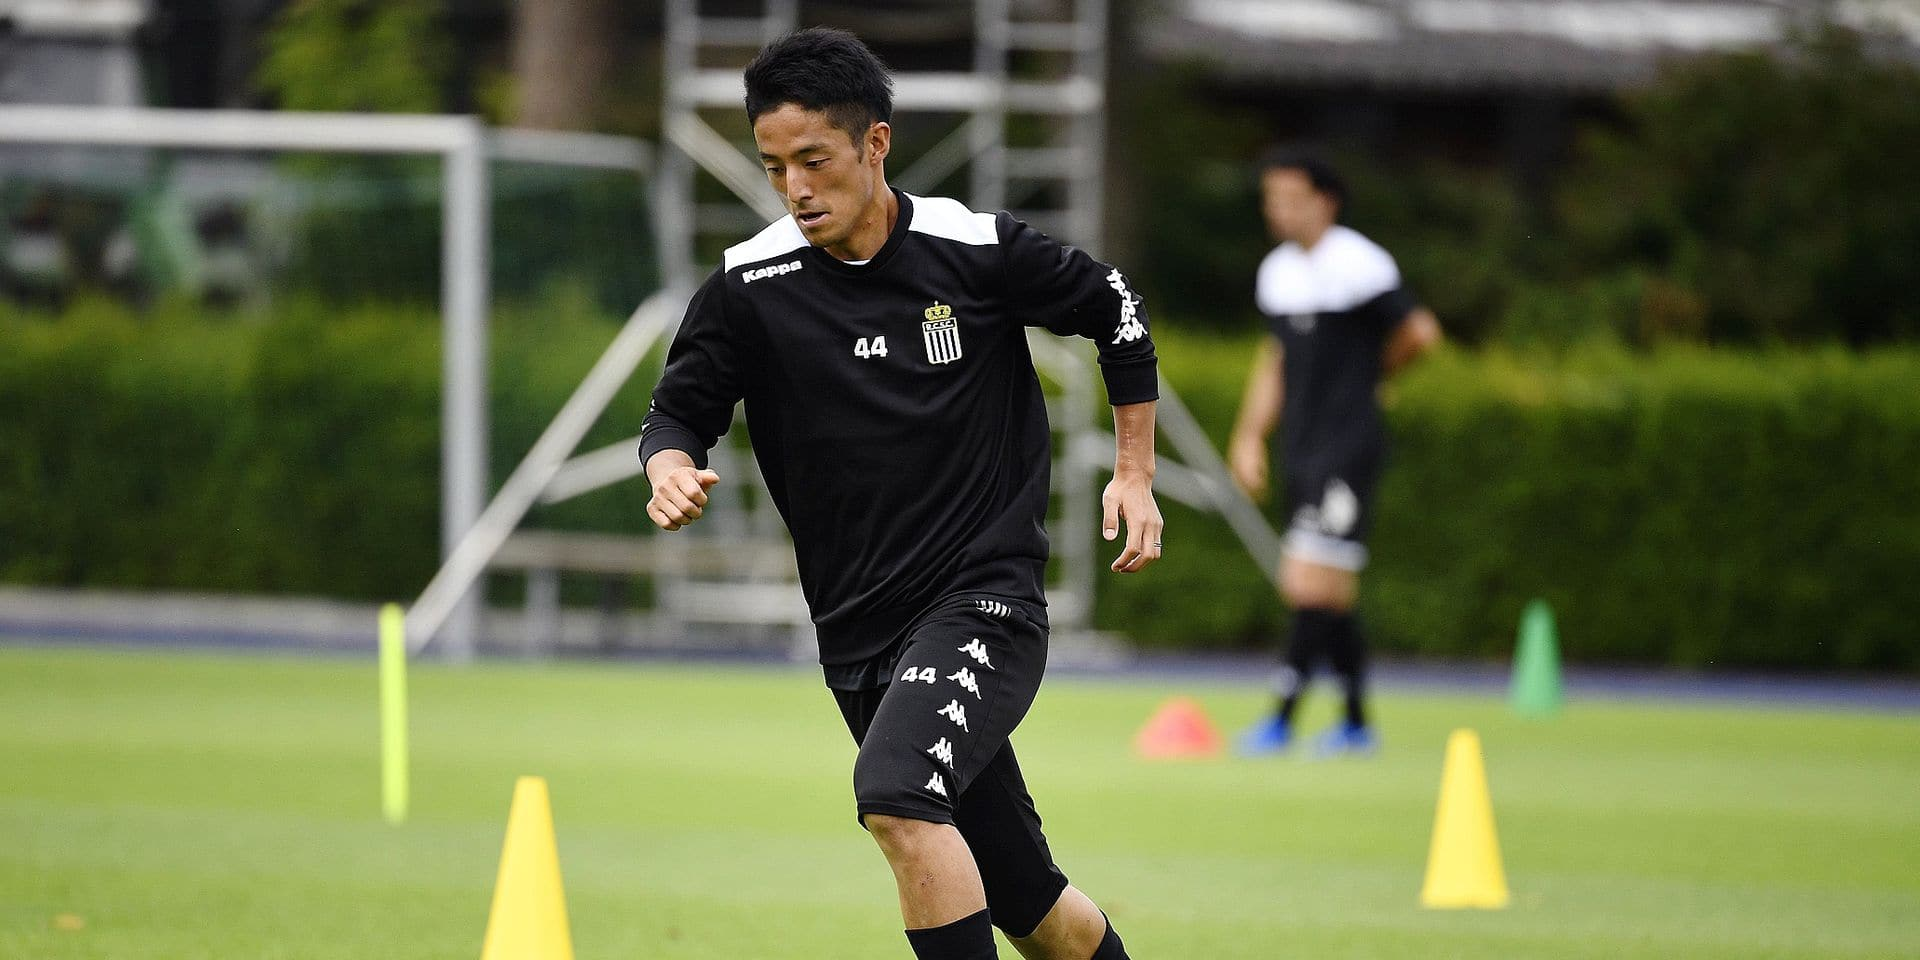 KAISERAU GERMANY- JULY 7 : Ryota Morioka midfielder of Charleroi pictured during a pre-season training summer stage camp in Sporthotel in Kaiserau 07/07/2019 ( Photo by Philippe Crochet / Photonews